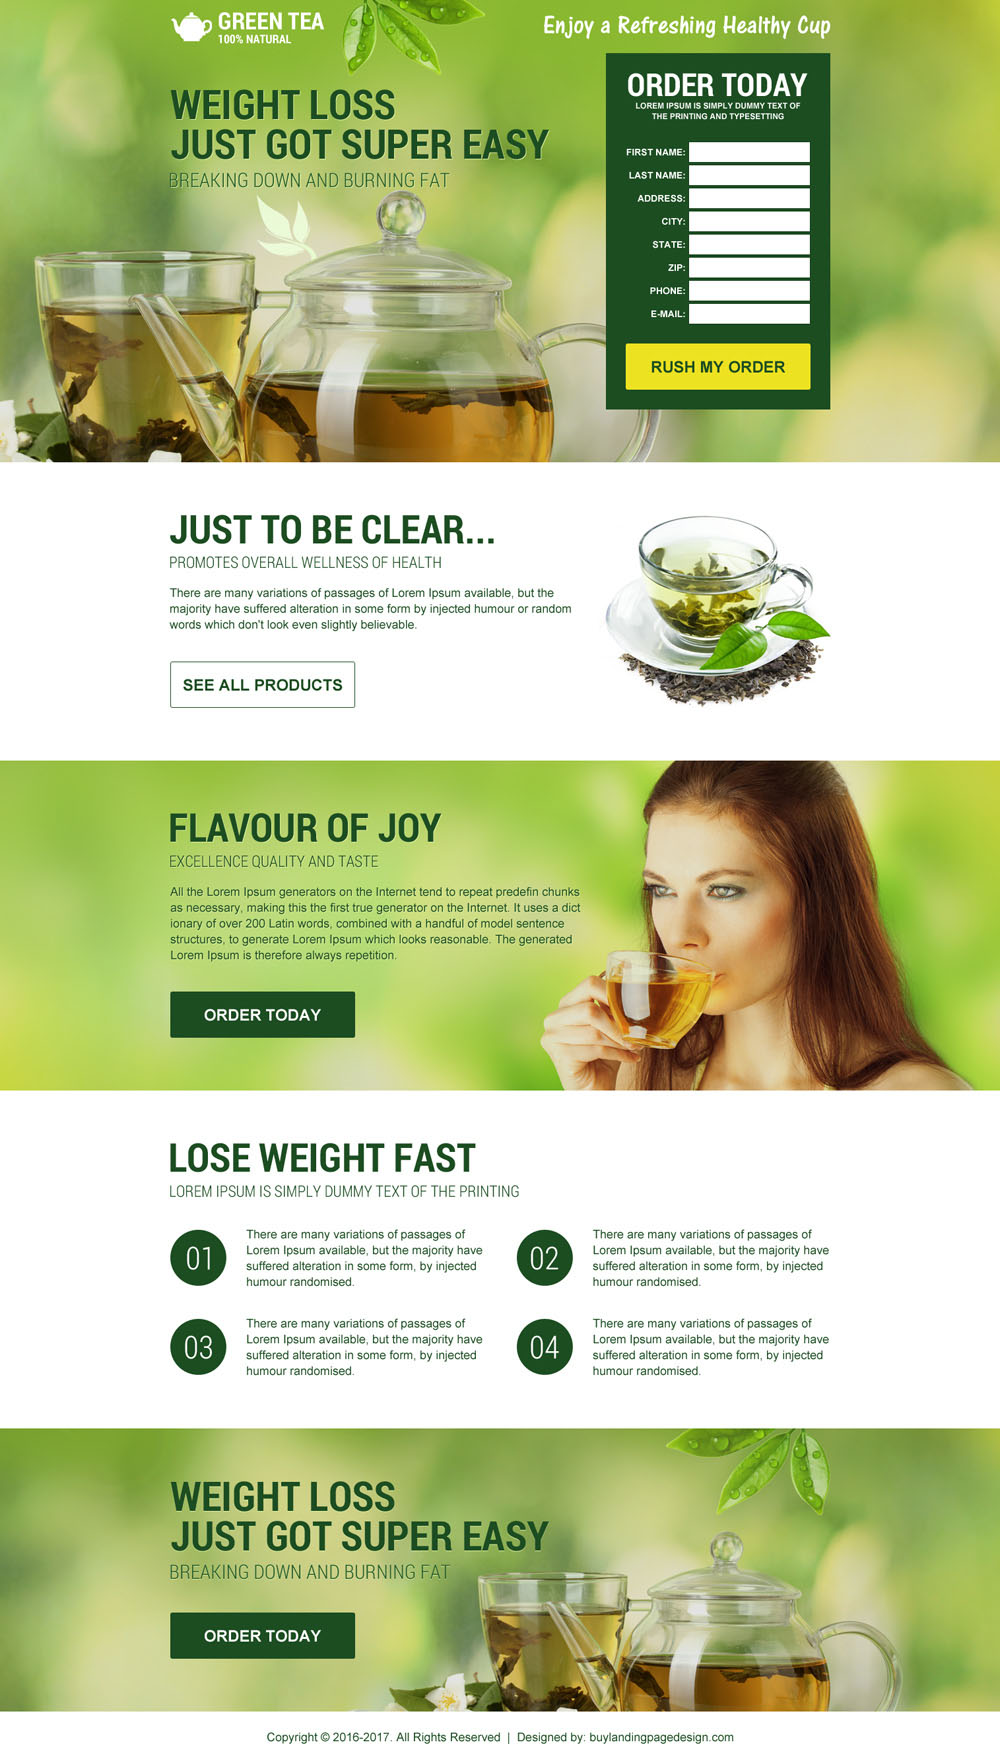 green-tea-weight-loss-diet-landing-page-design-050